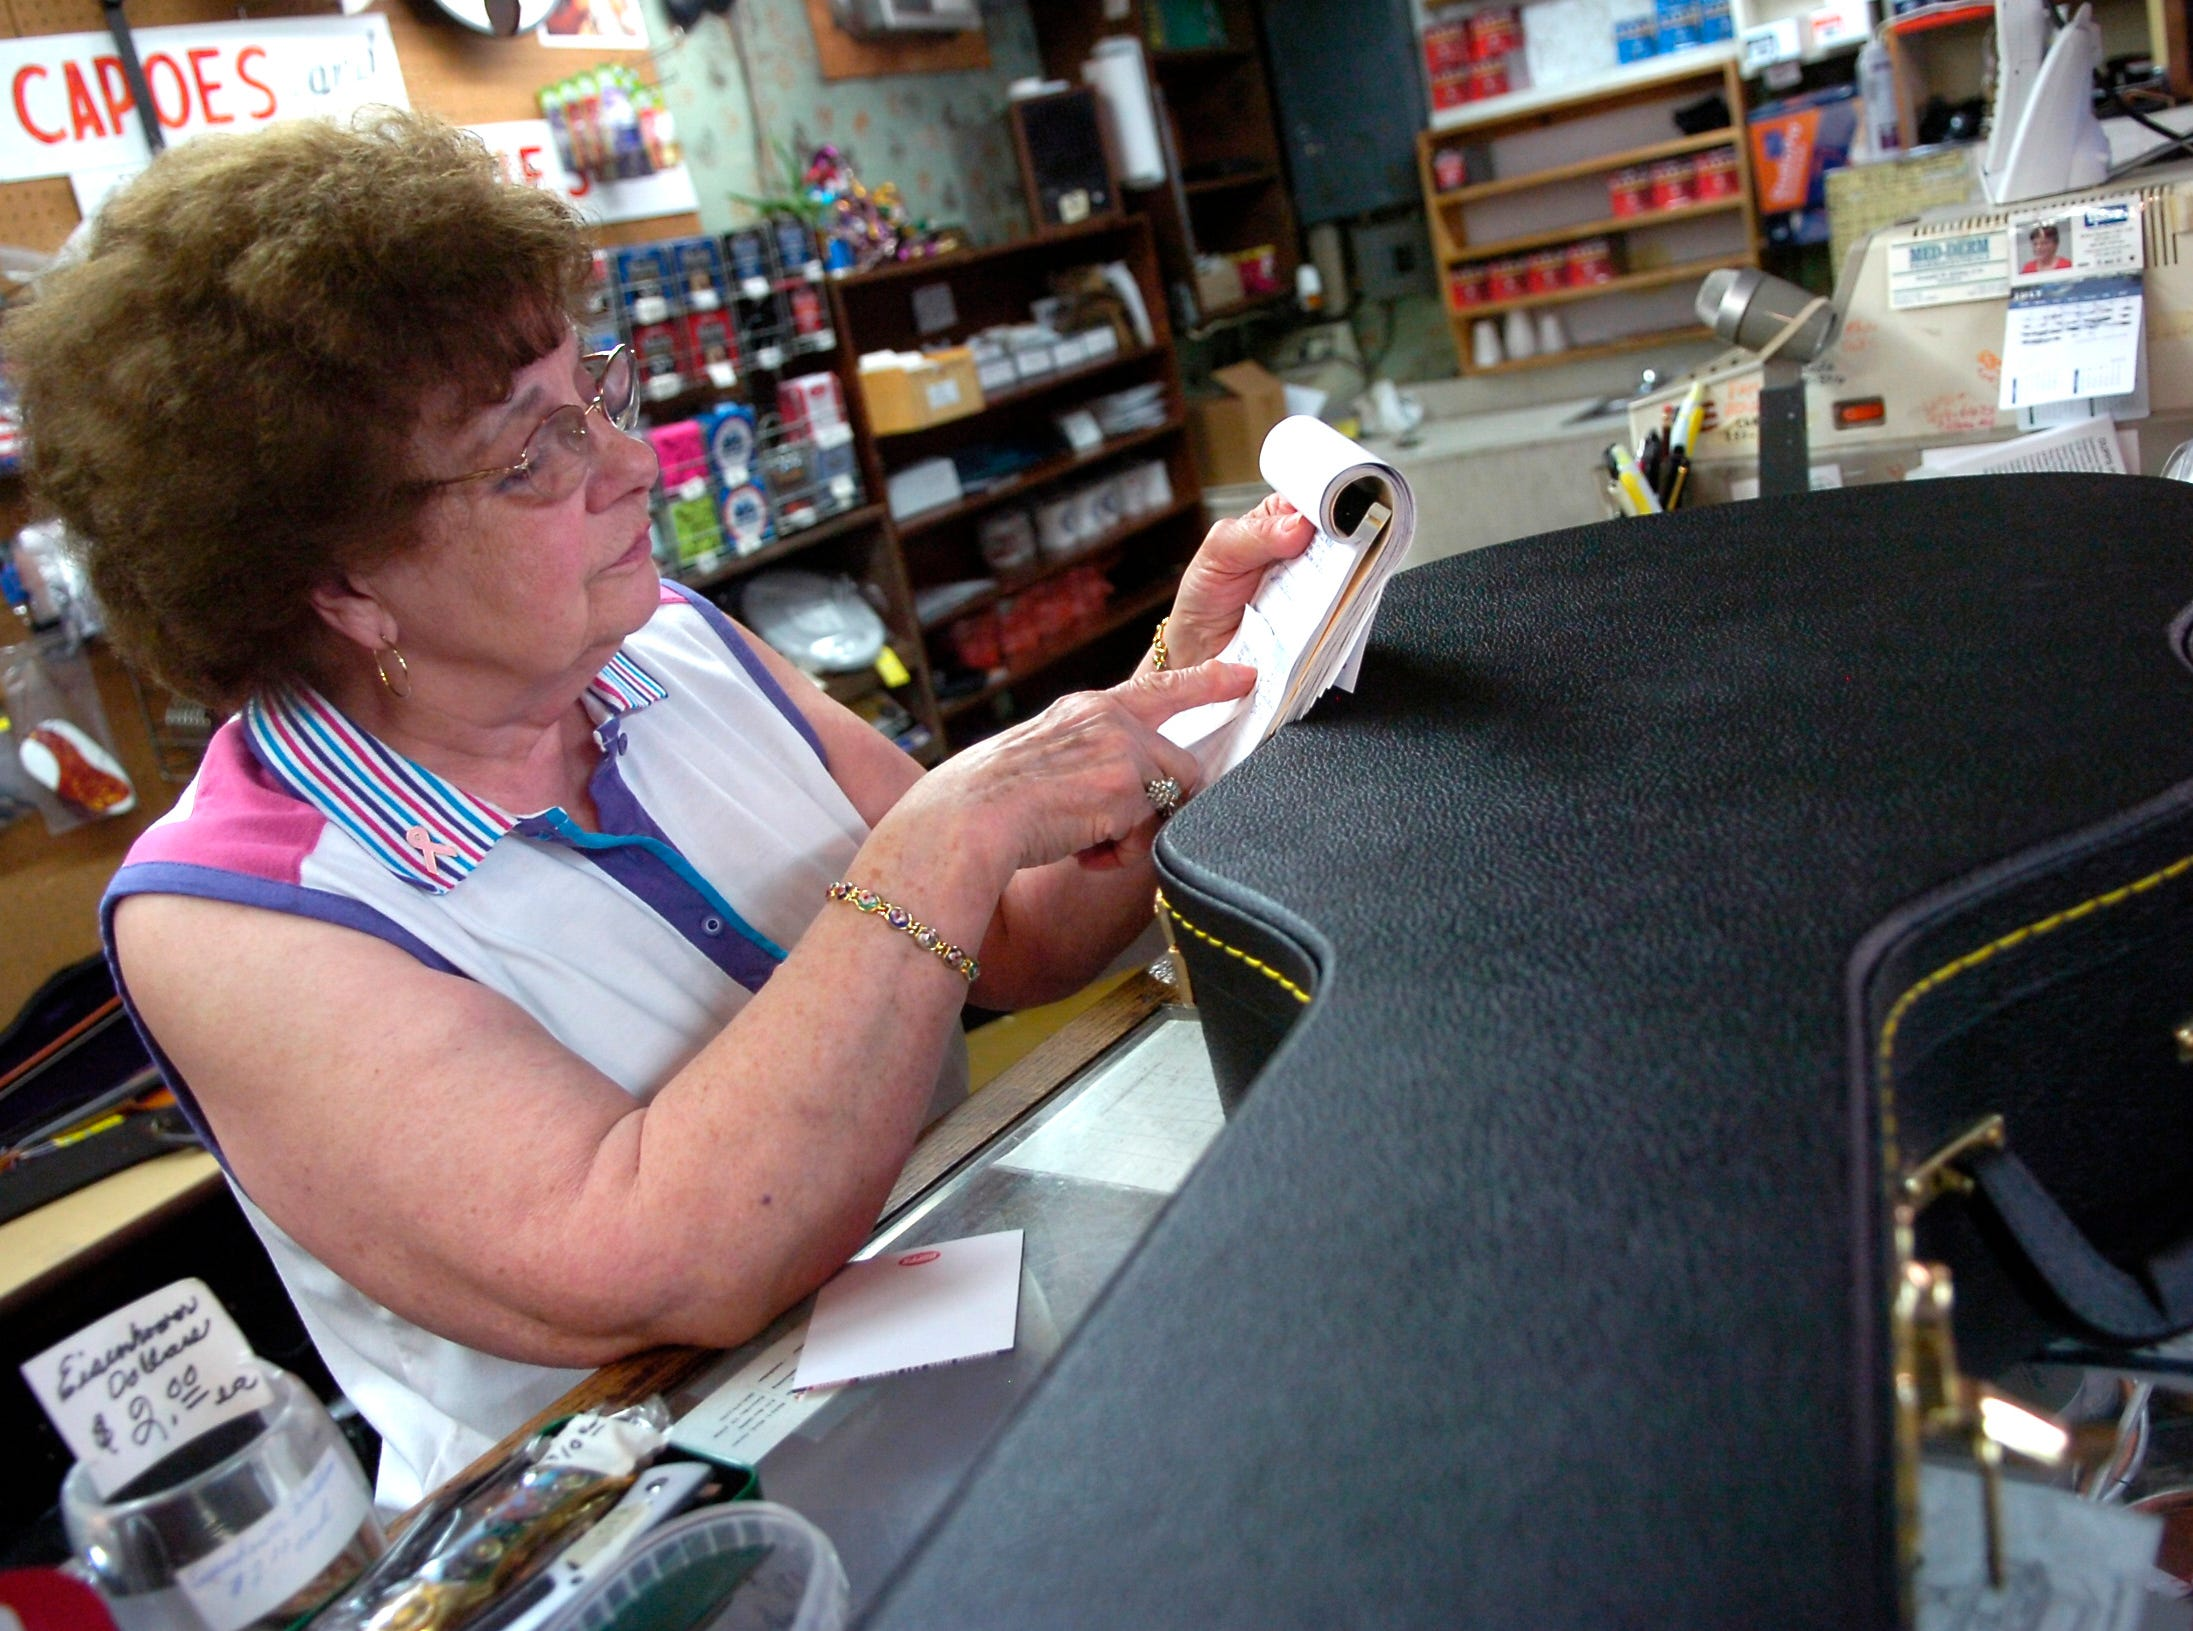 Employee Faye West shows a purchase ticket from accused shooter Jim Adkisson at the Ciderville Music Store on Clinton Highway.  Adkisson purchased a guitar case at the store last Friday which he used to conceal his weapon before the shooting at the Tennessee Valley Unitarian Universalist Church on Sunday, July, 27, 2008.